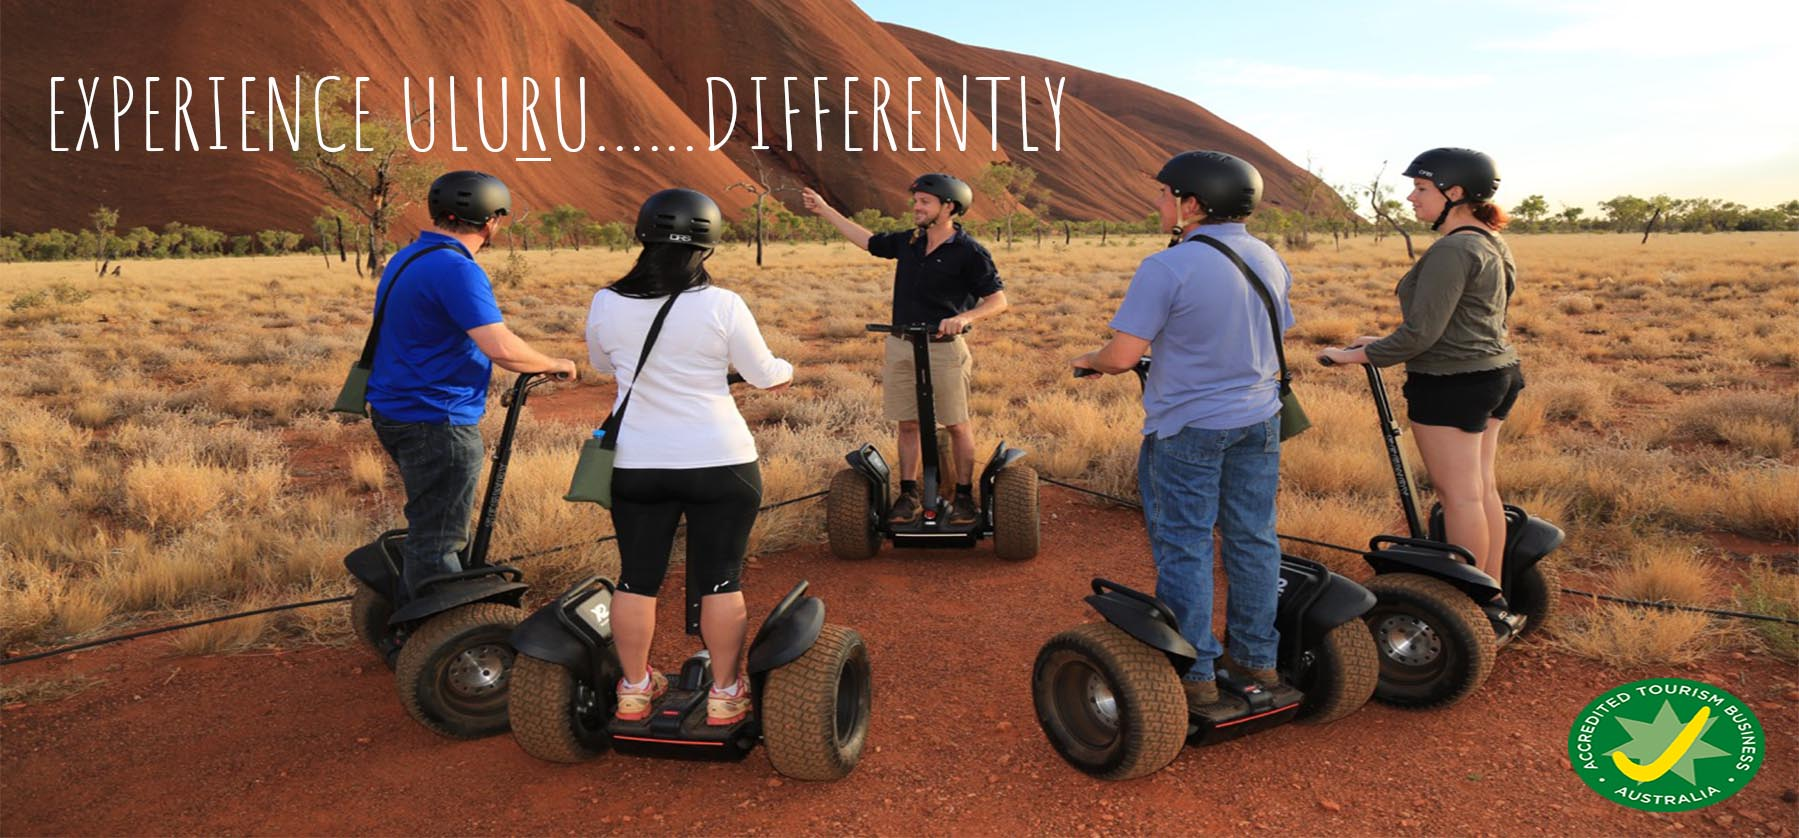 Uluru Segway Tours - Experience Uluru.... differently